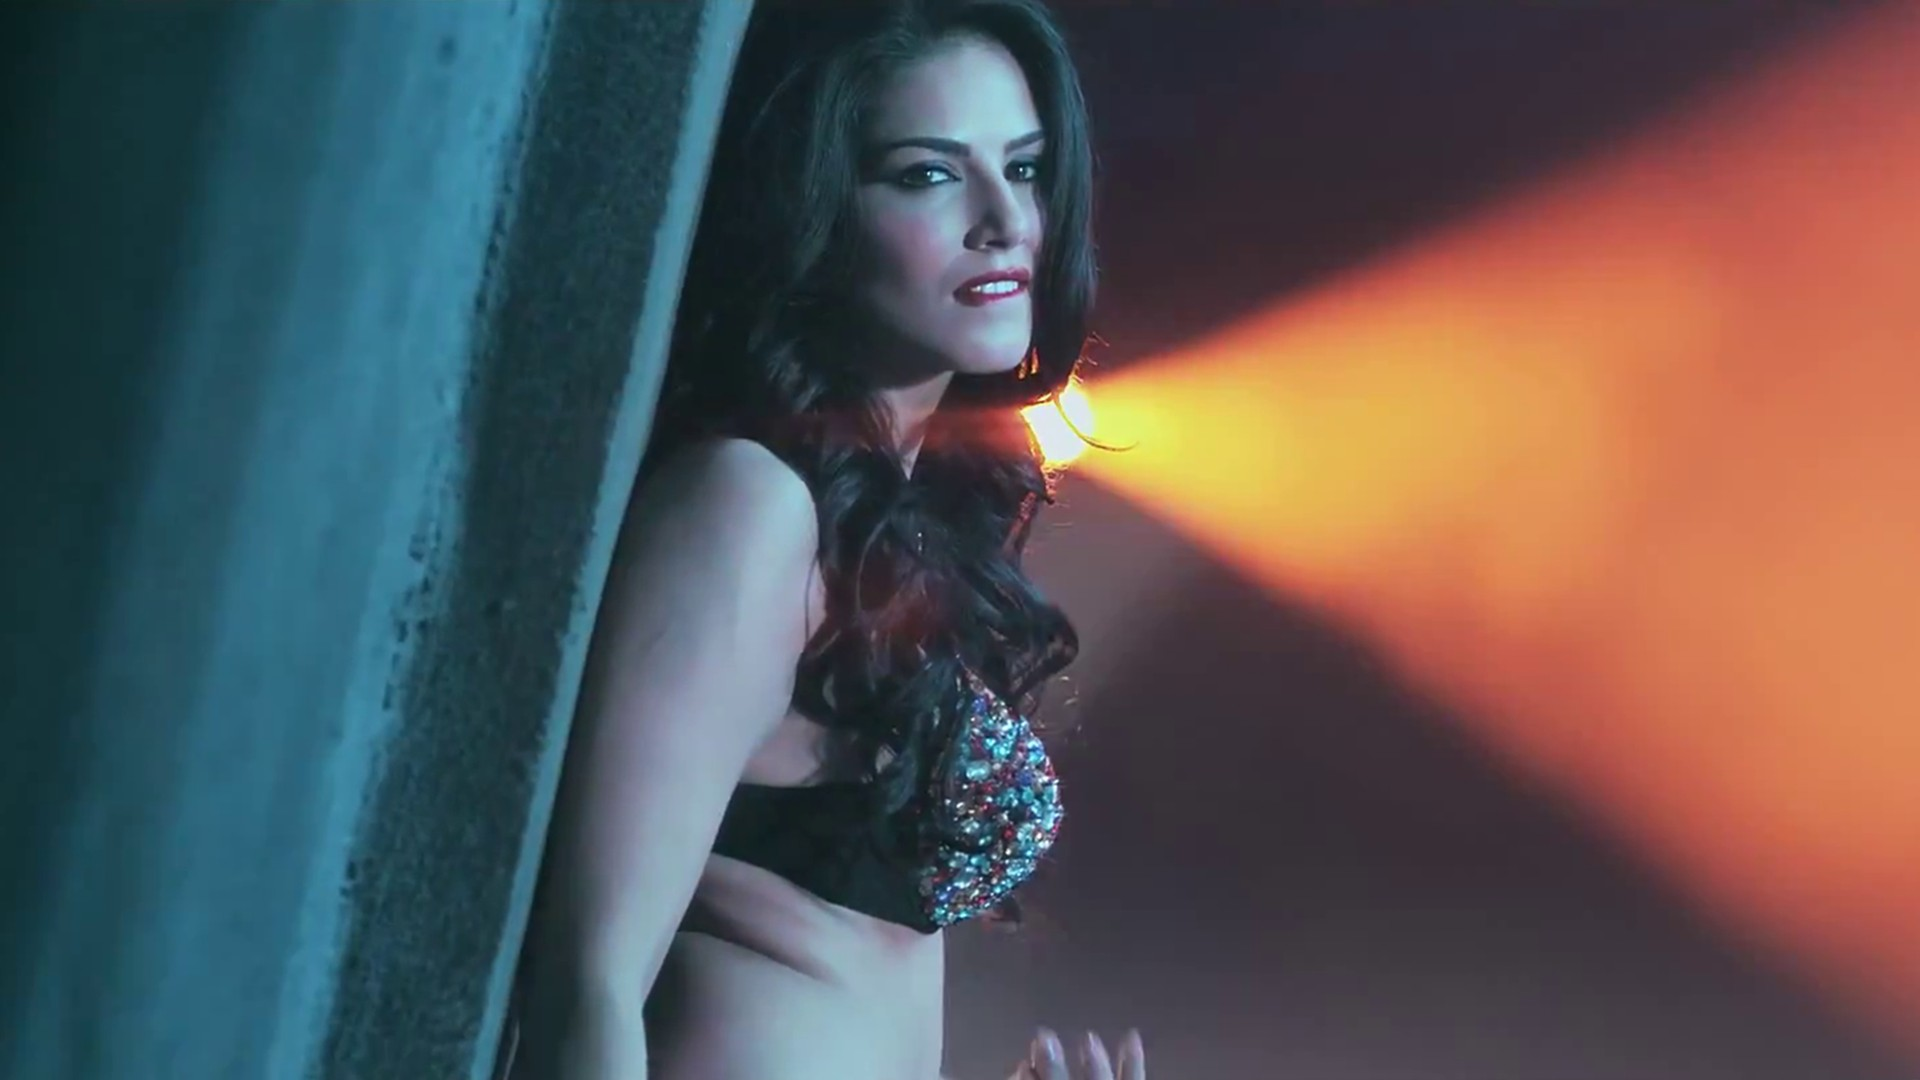 Movie Hd Wallpapers: Sunny Leone HD Wallpapers